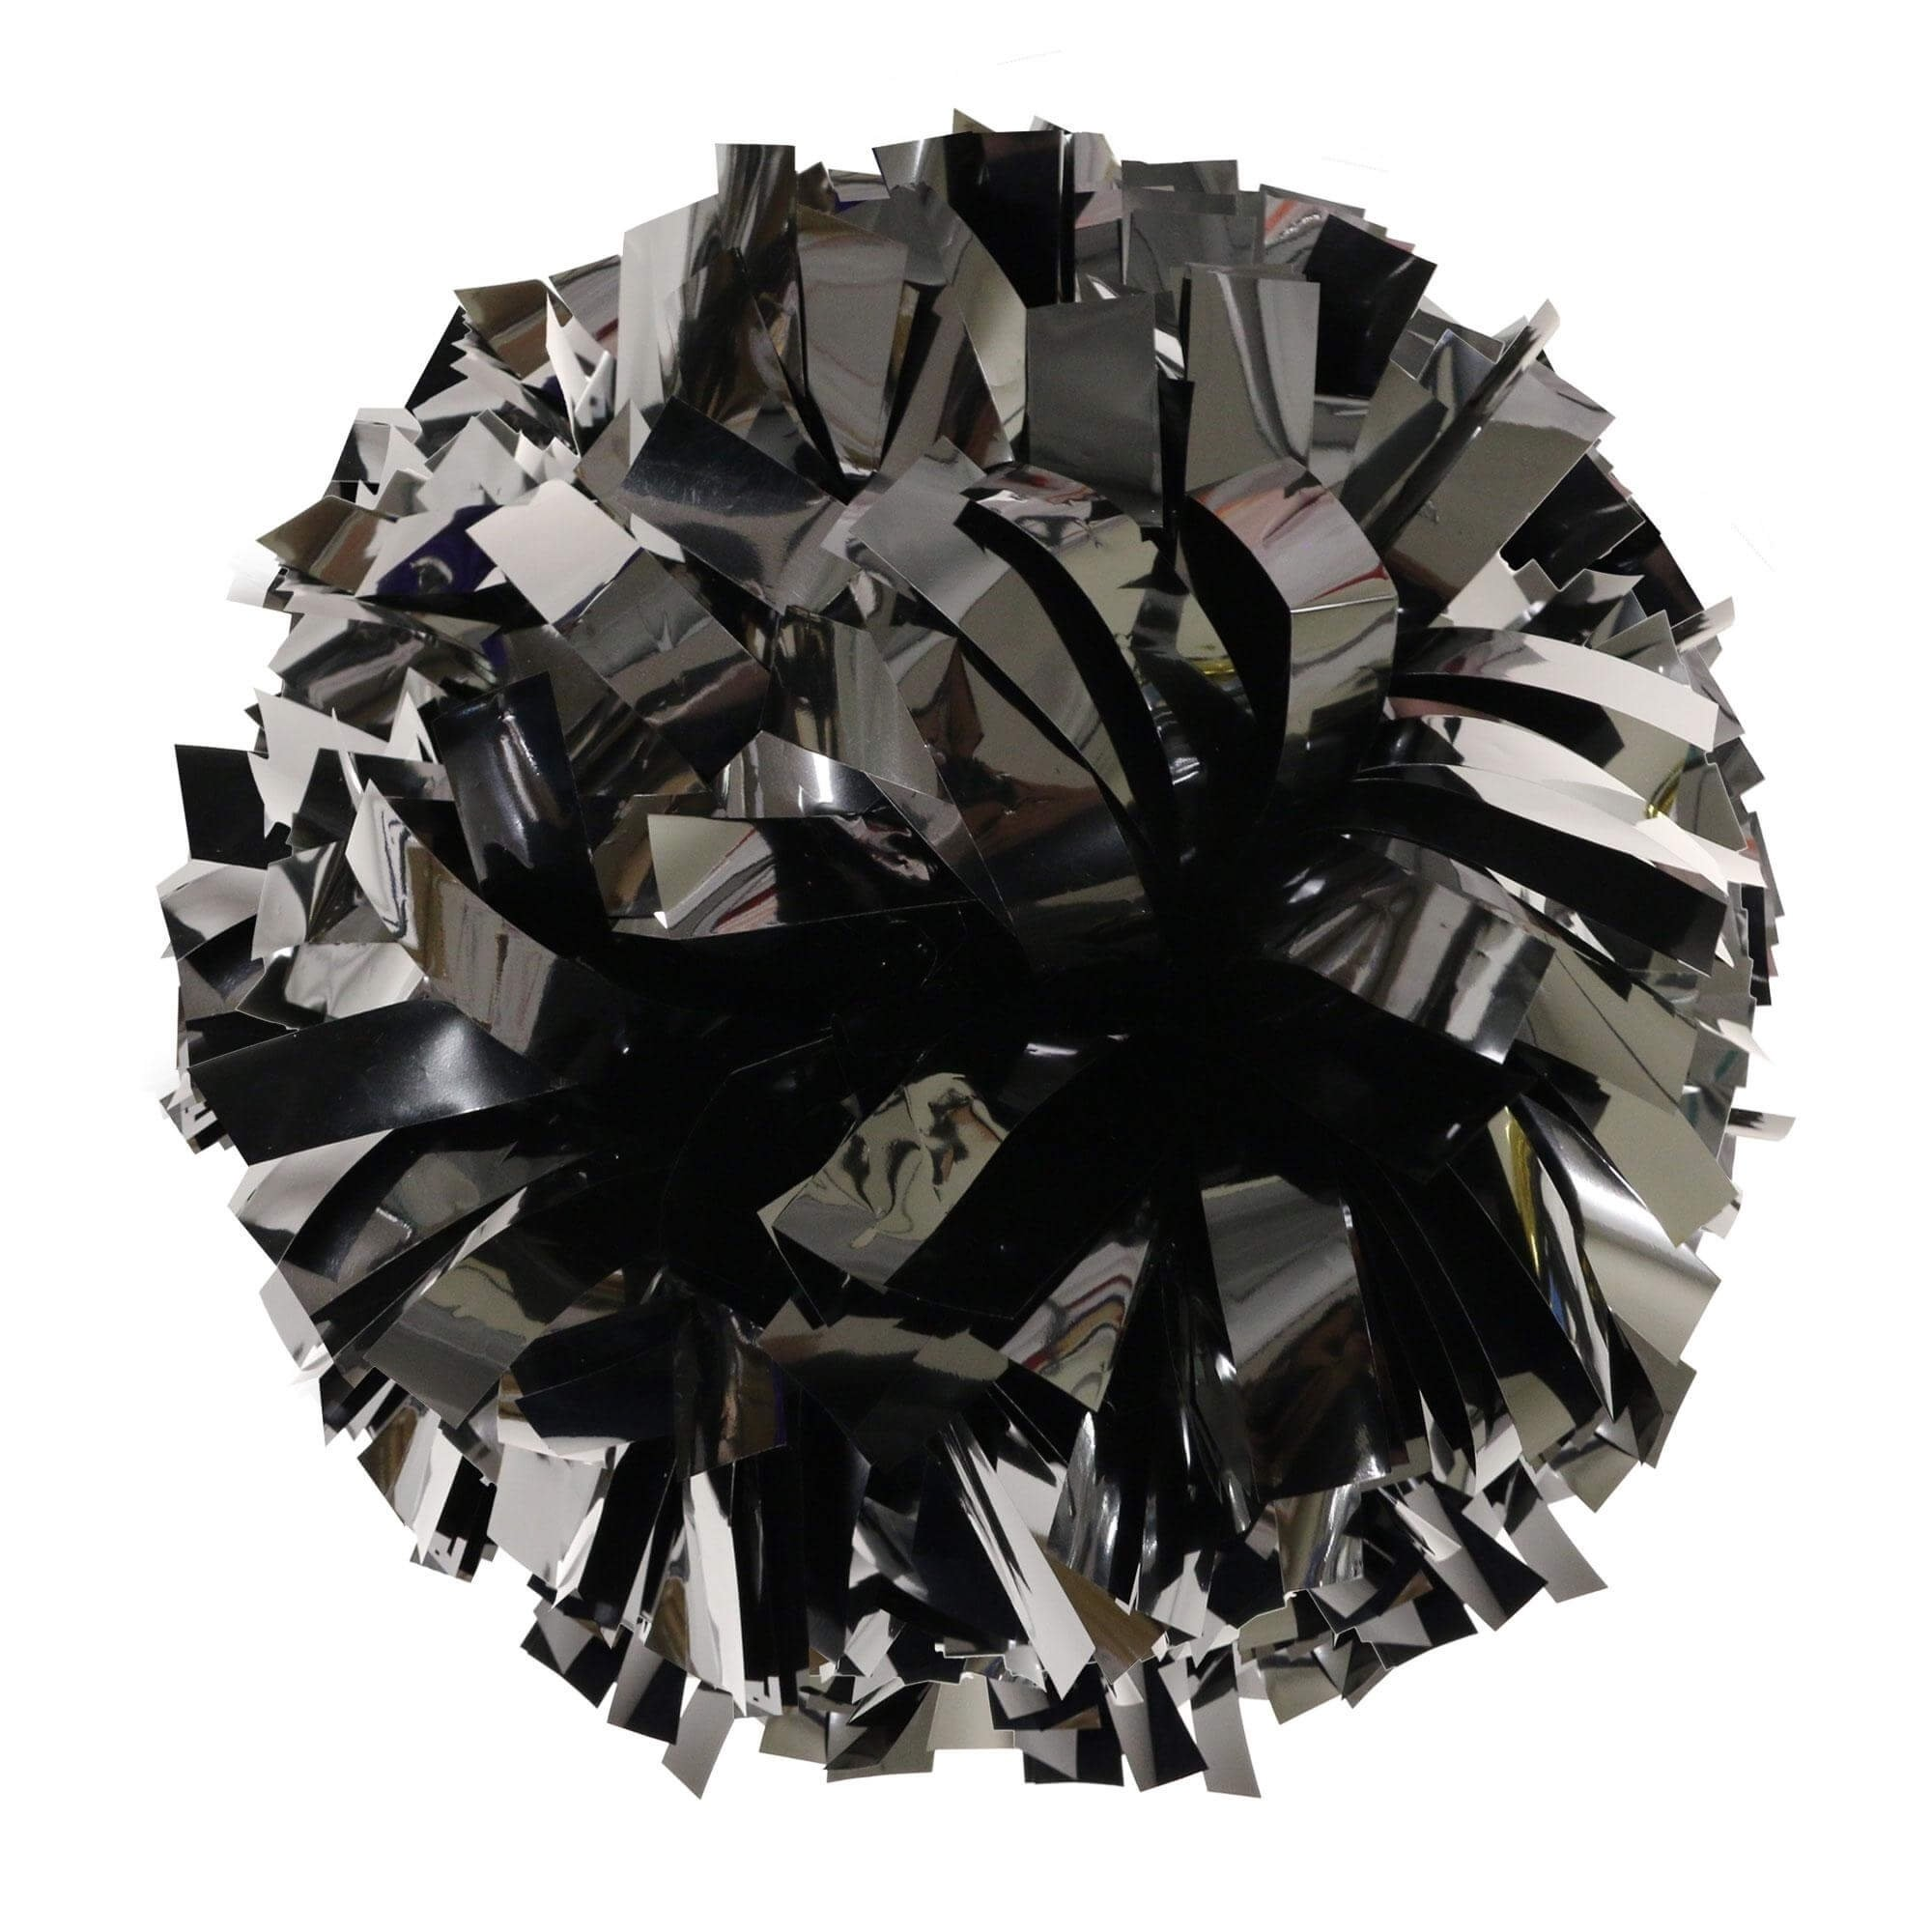 Danzcue Black Metallic Poms - One Pair